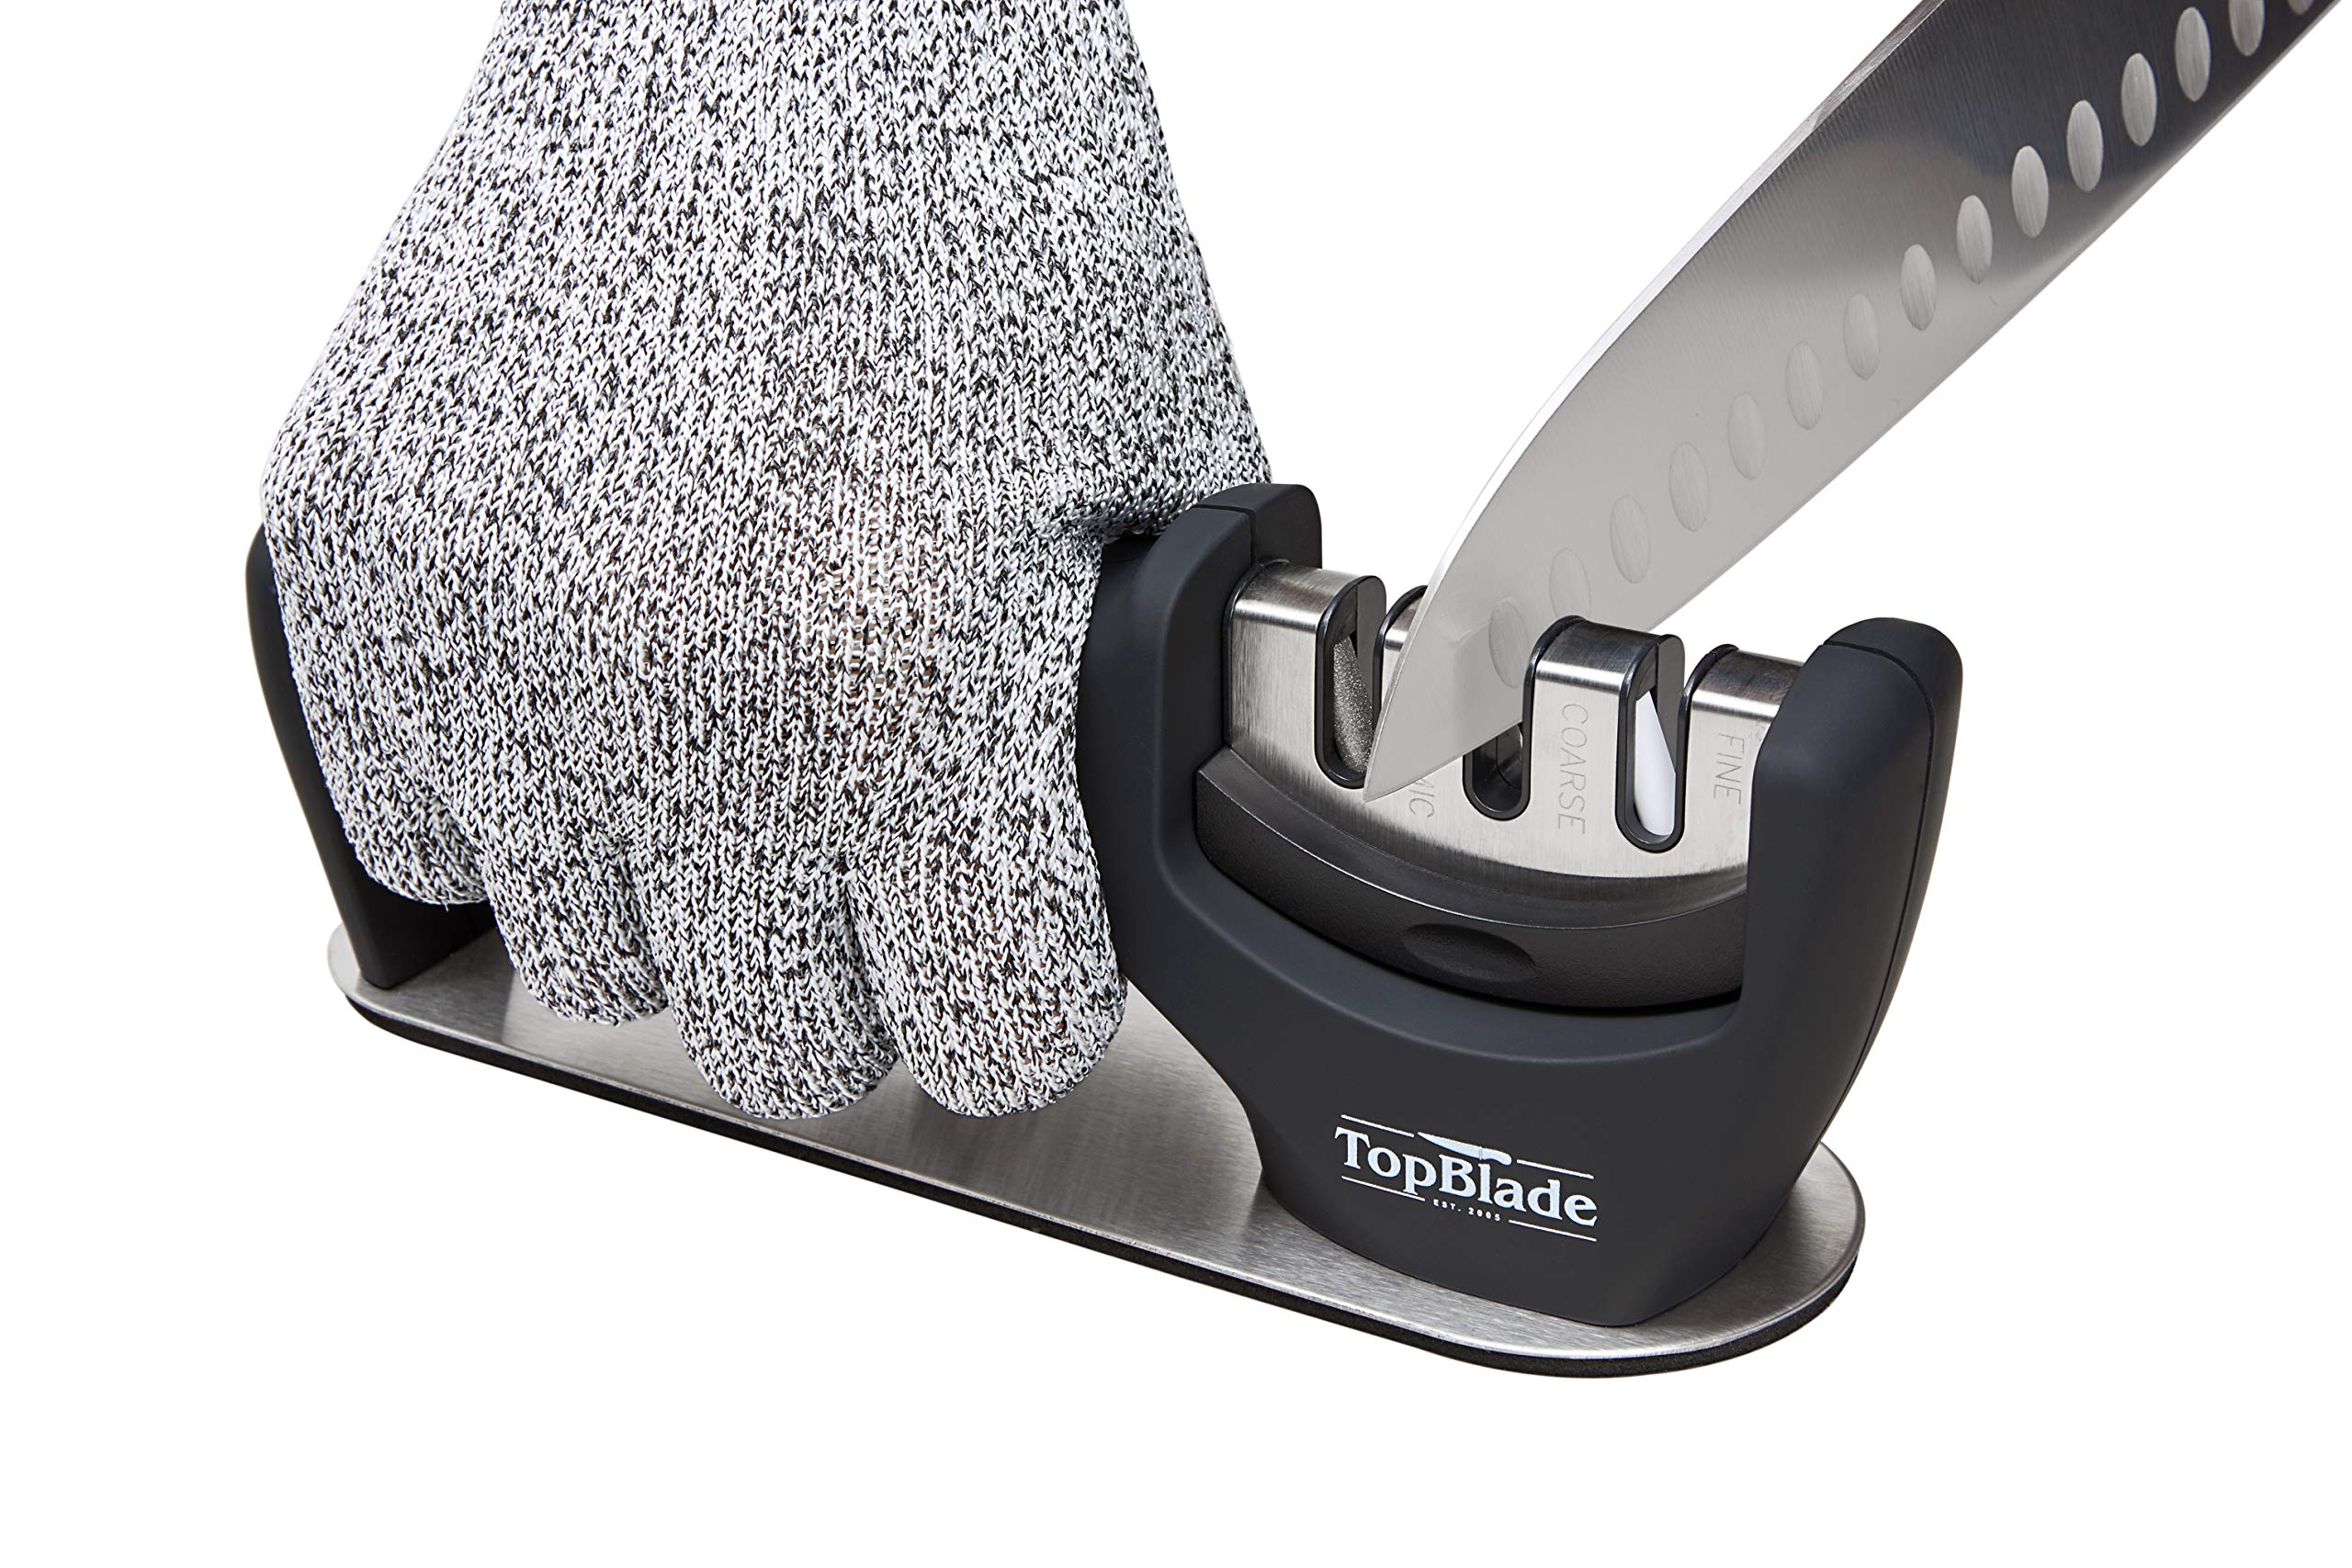 TopBlade 2019 - Upgraded 3-stage Kitchen Knife Sharpener to Restore, Sharpen and Polish Steel & Ceramic Blades - Improved Safety & Stability - Cut Resistant Glove Included by TopBlade